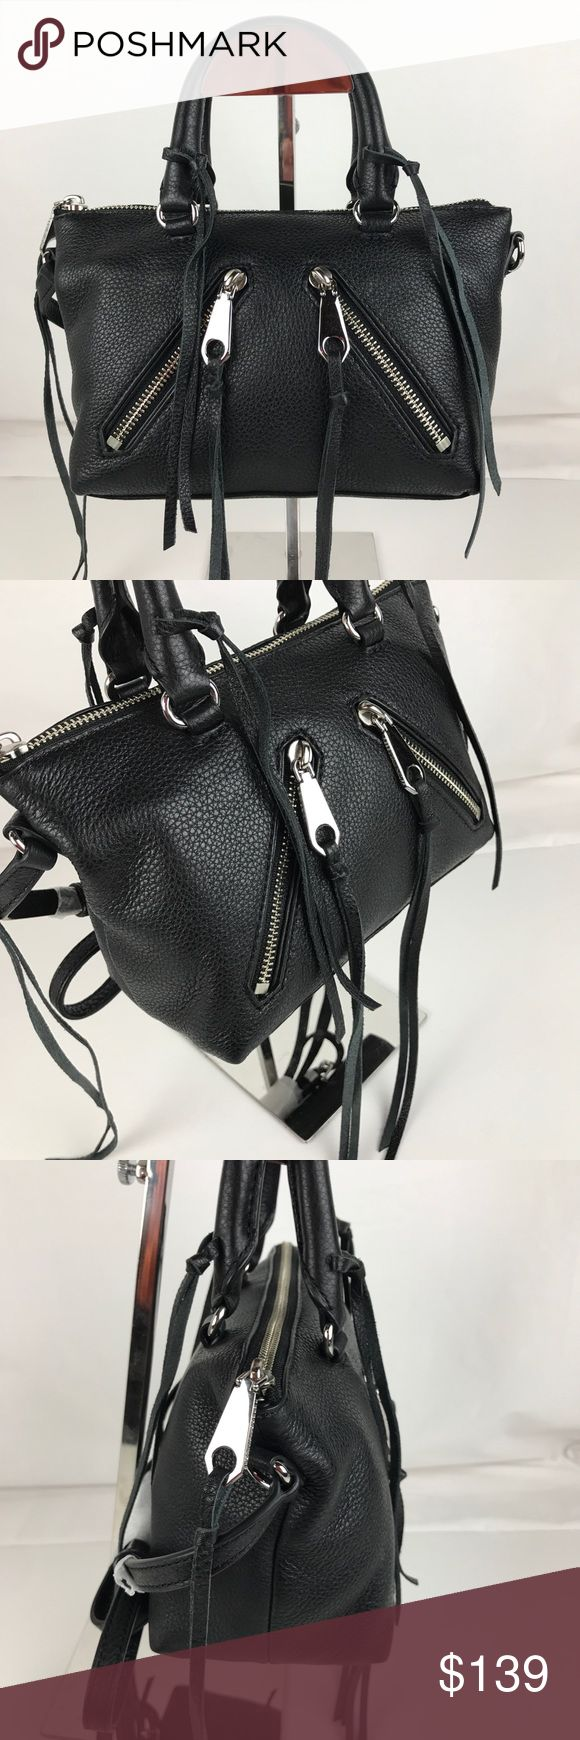 """Rebecca Minkoff Micro Moto Black Leather Satchel Authentic Rebecca Minkoff Style HS16EMOX26. New without Tag. Includes Original Dust Bag.  Super Cute! Double zip exterior pockets, inside pockets, rolled top handles and a crossbody strap provide street-chic carrying options. 10""""W x 4""""D x 6""""H; 3.5"""" handle drop, 25"""" strap drop. Style HC35EMOX26. RB531-2  Enjoy fast shipping and epic customer service from a trusted 5-star Poshmark Ambassador with over 1000 handbags sold to date! Rebecca Minkoff…"""